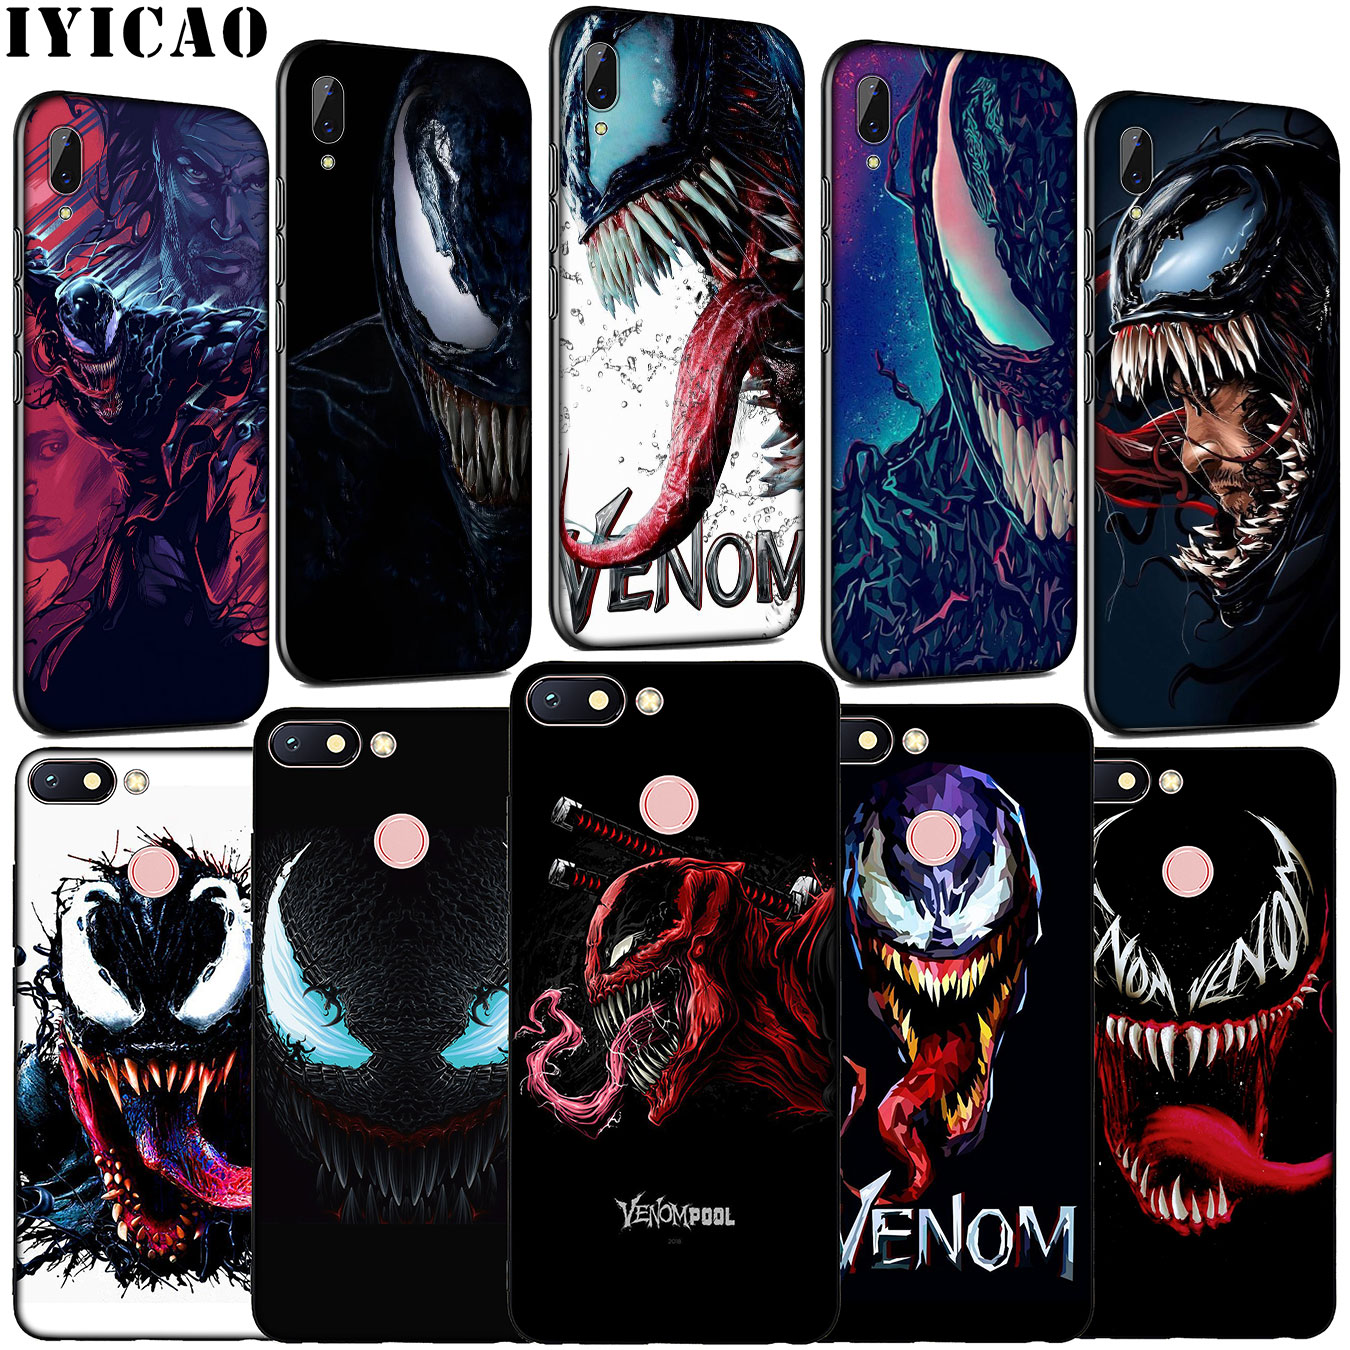 IYICAO <font><b>Marvel</b></font> Venom Hero Soft Silicone Phone <font><b>Case</b></font> for <font><b>Xiaomi</b></font> <font><b>Redmi</b></font> K20 GO 8A 7A 6A 5A 4A 4X <font><b>Note</b></font> 8 7 6 Pro 5 Plus Cover image